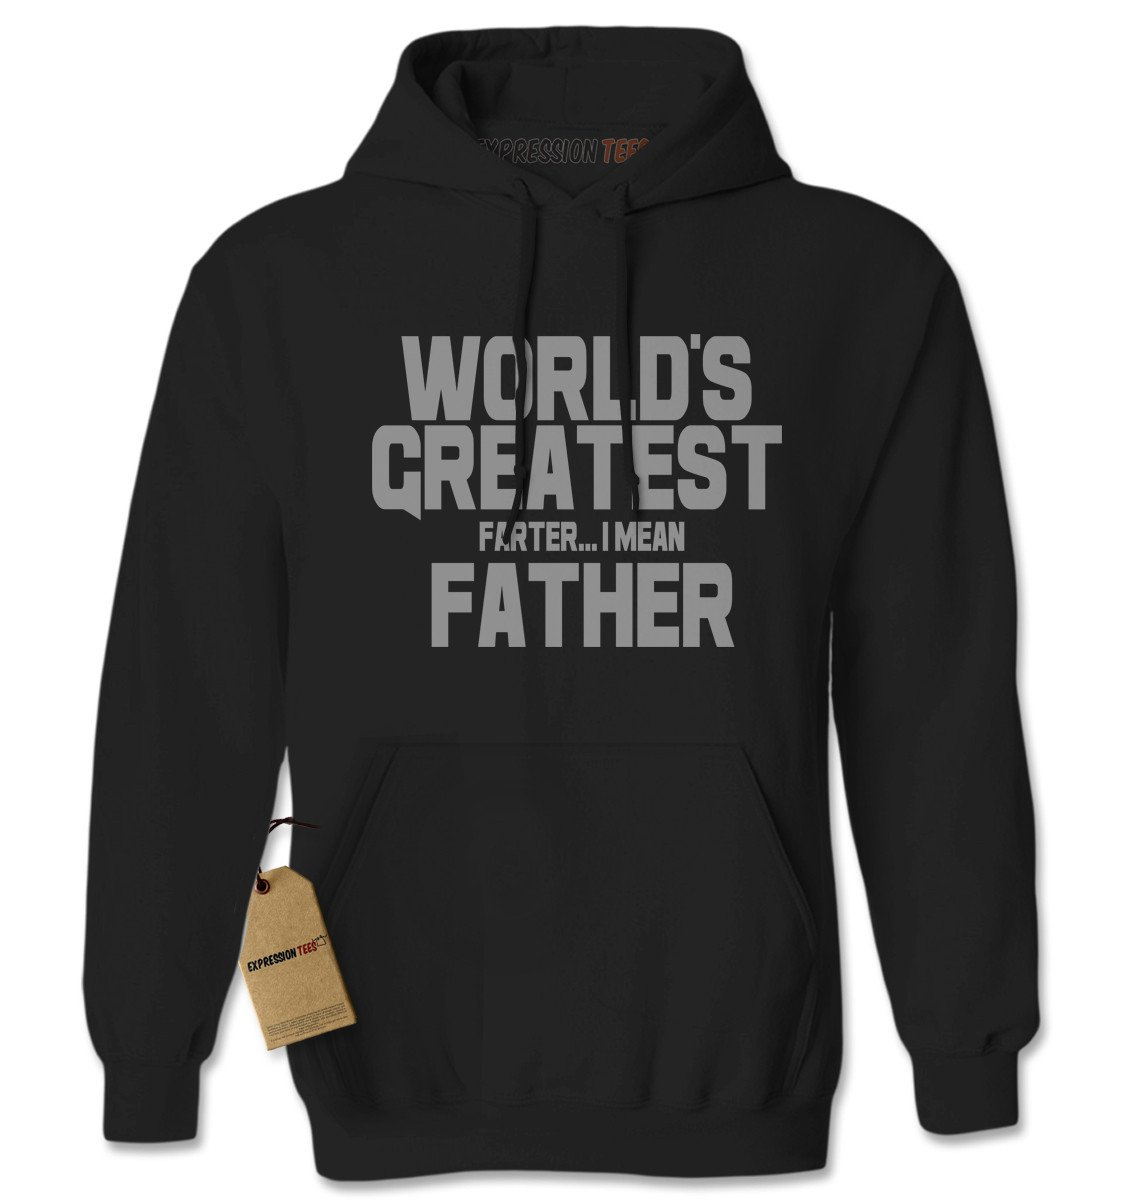 World's Greatest Farter Father Adult Hoodie Sweatshirt